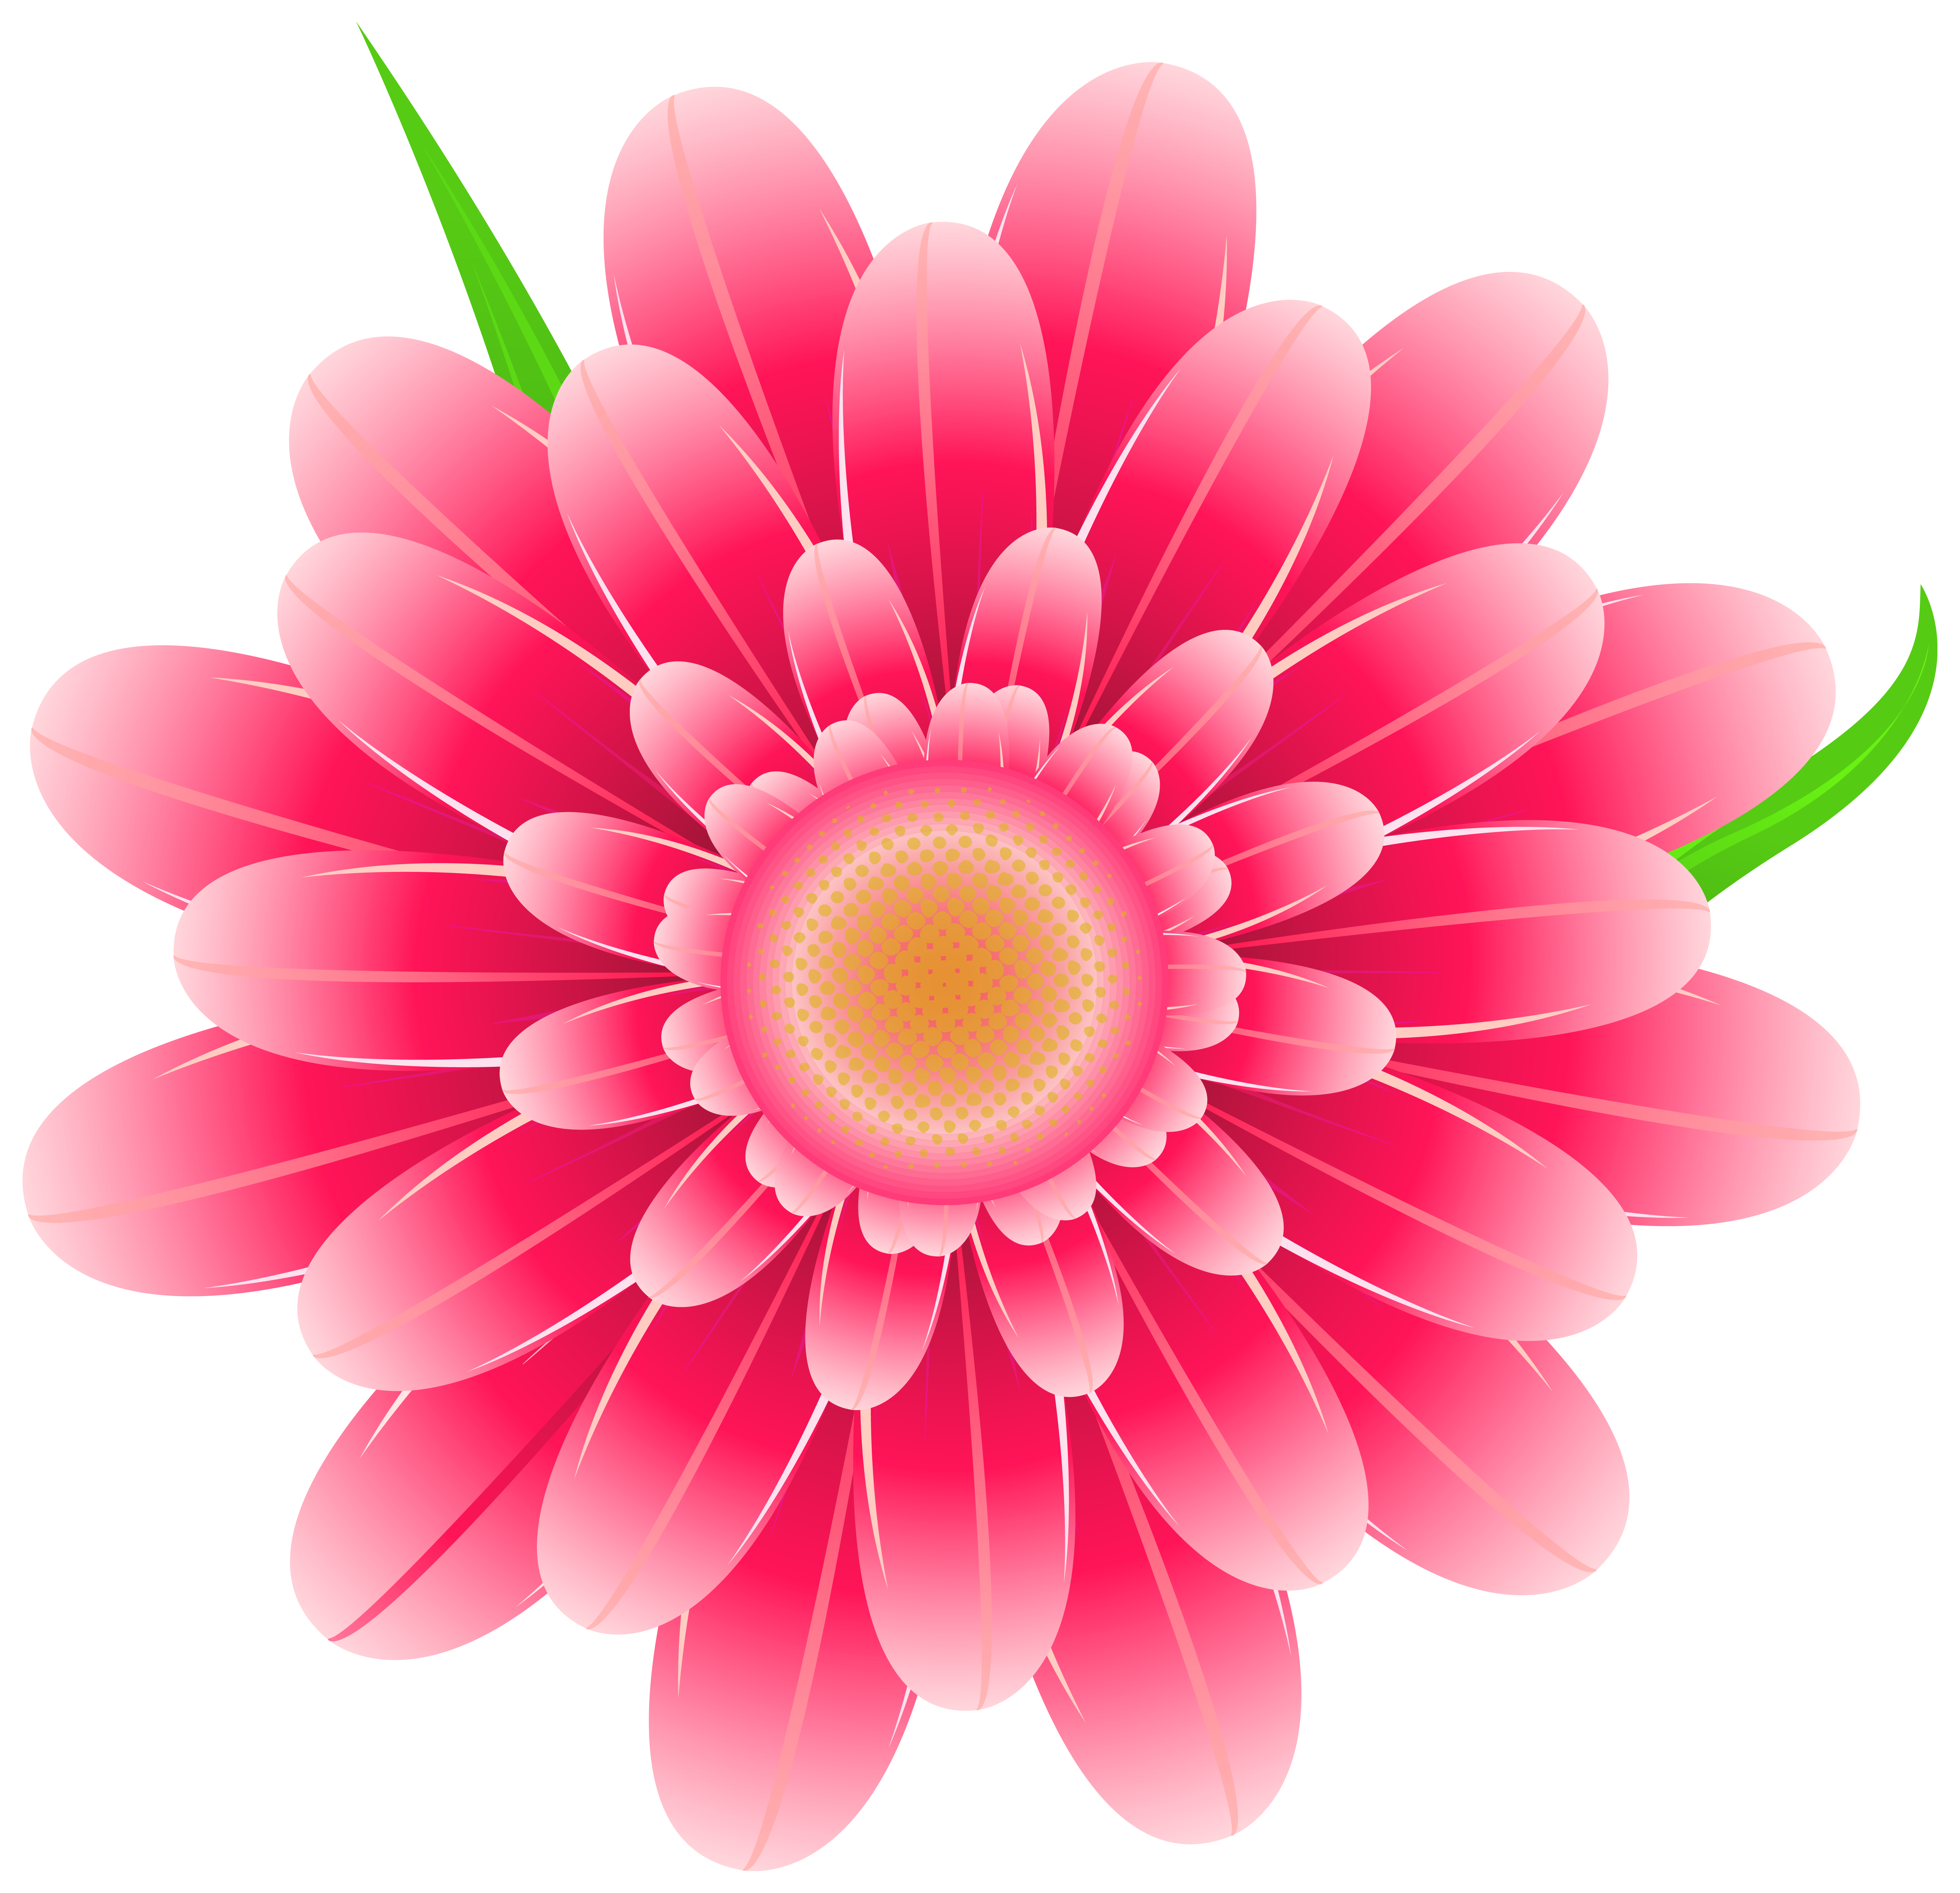 Flowers Clipart Png - Transparent Pink Flower Clipart PNG Image​ | Gallery Yopriceville ...